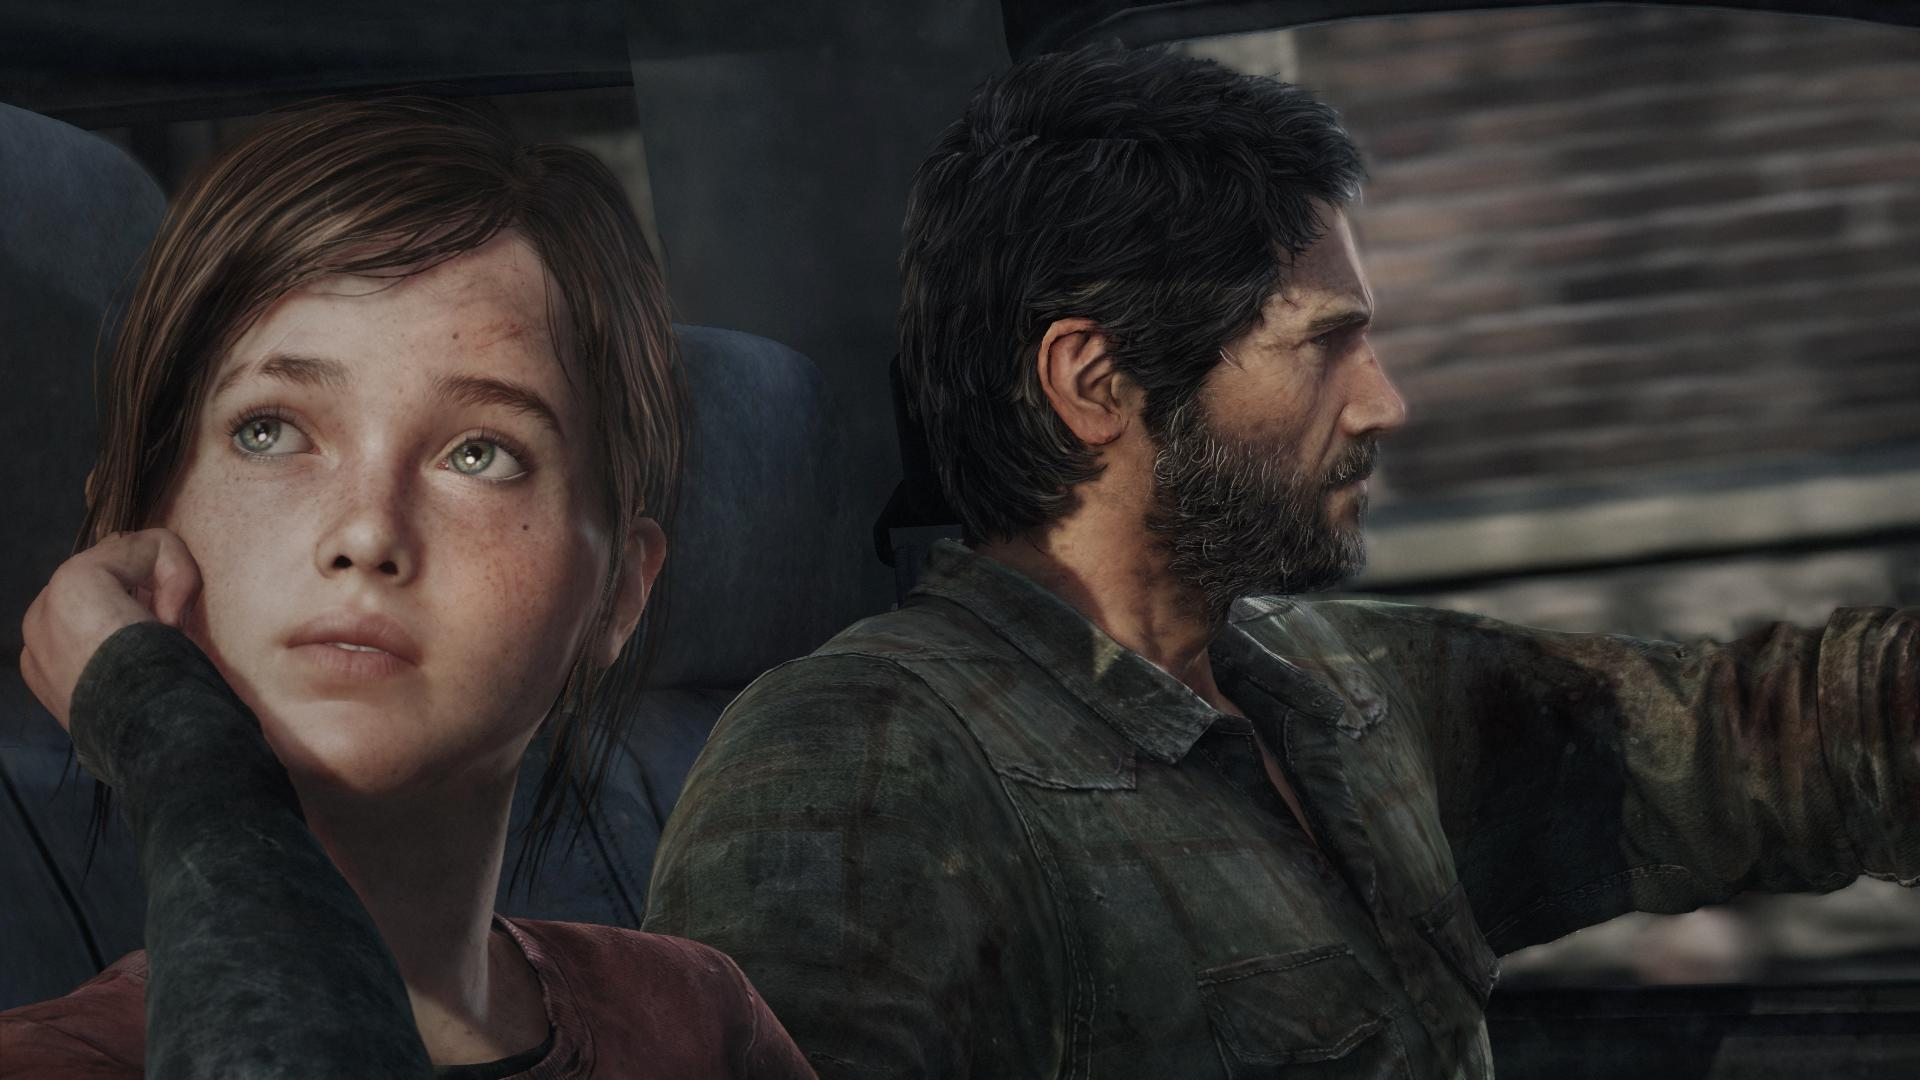 The Last of Us 2 Multiplayer | Naughty Dog confirma modo online 1